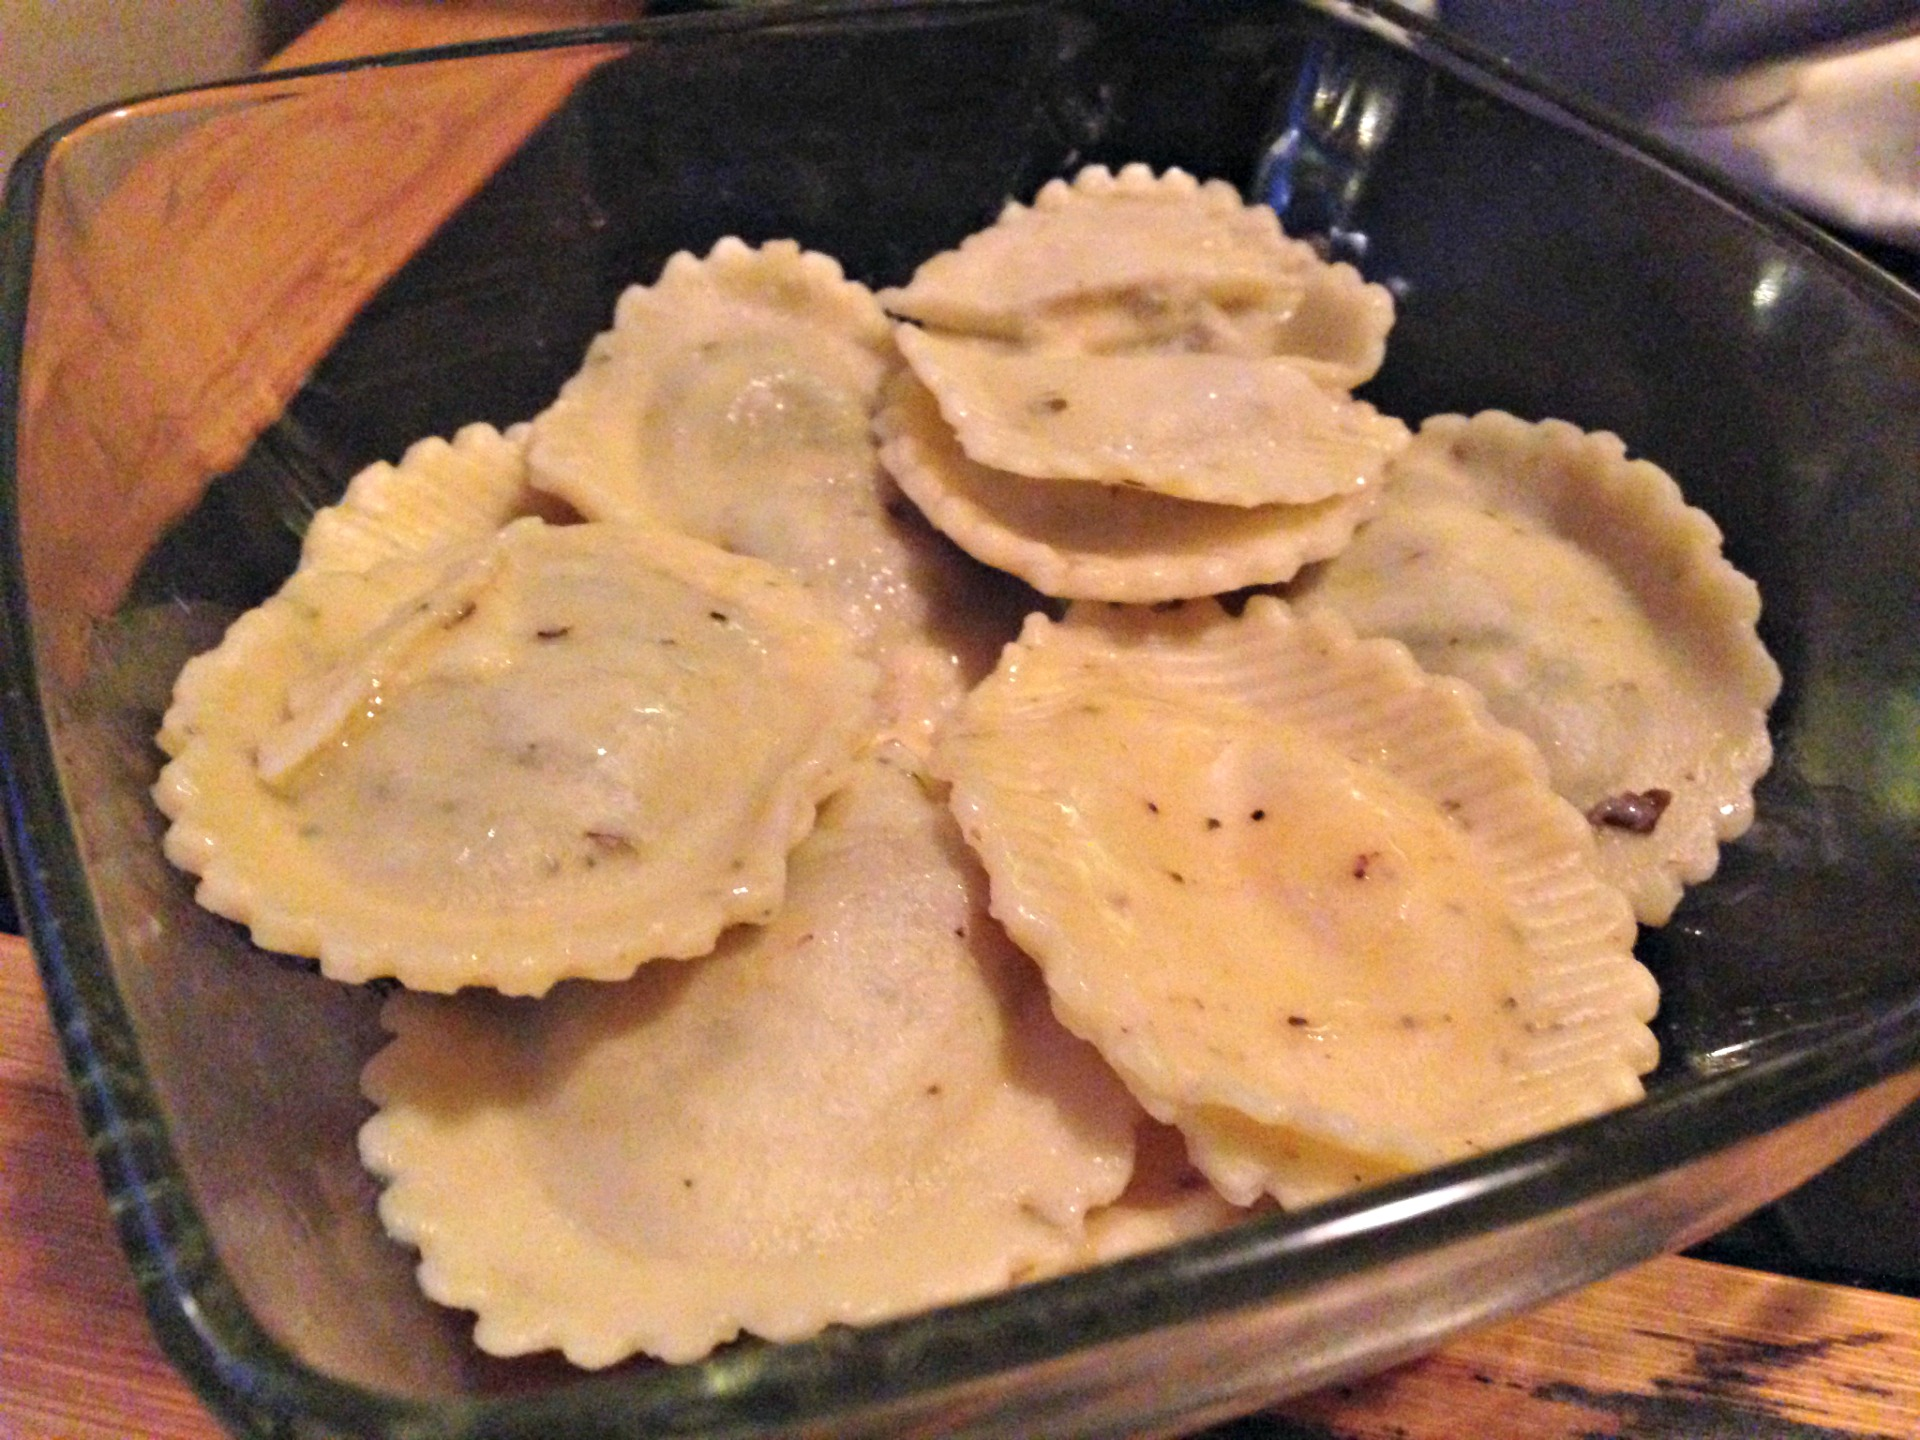 Porcini ravioli in herb pasta from Pasta Gina